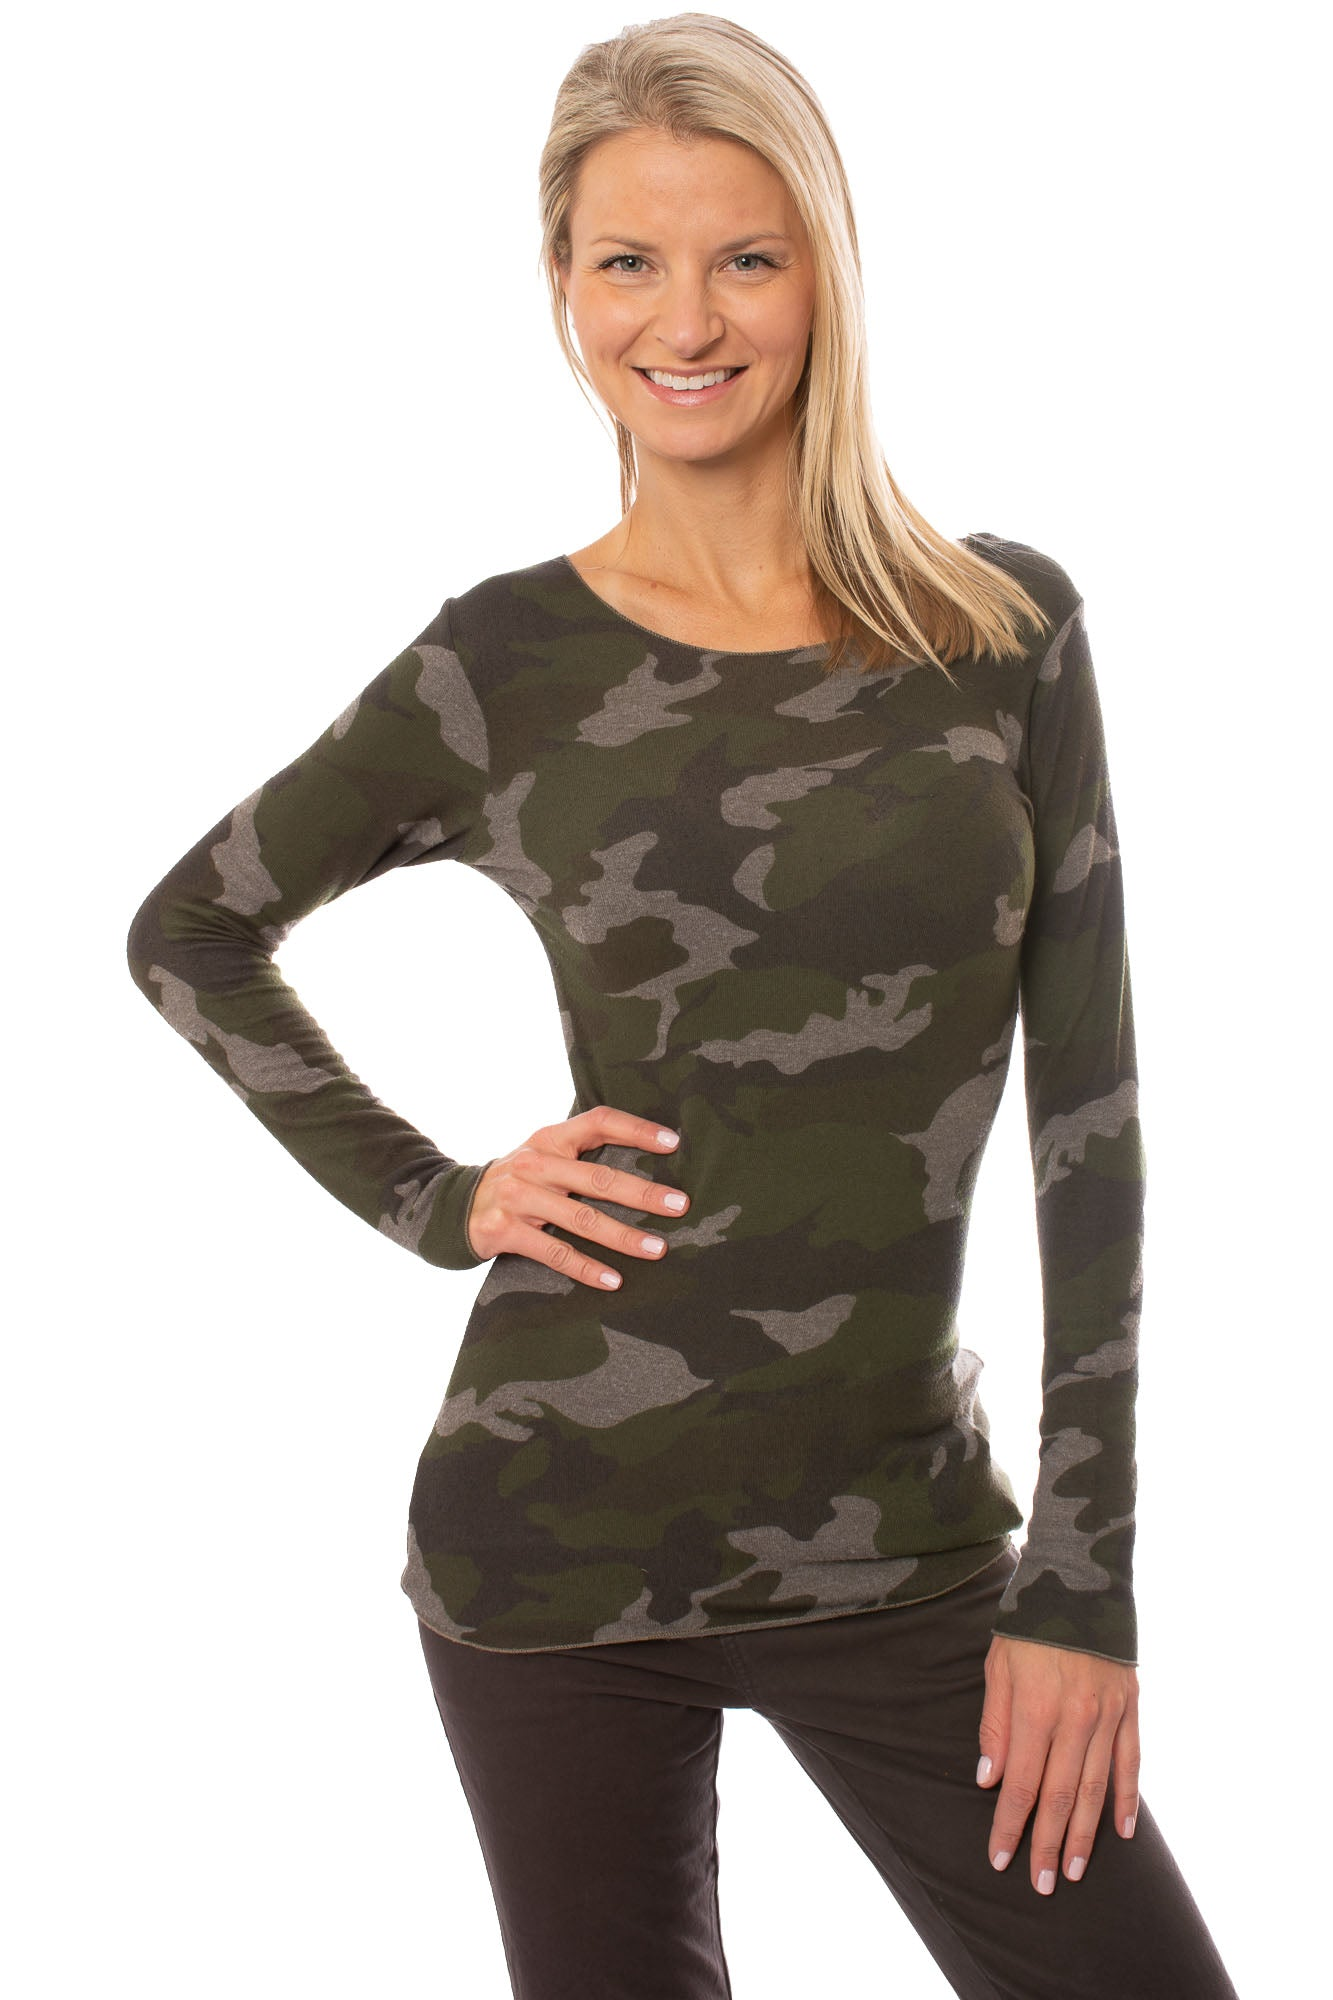 Hard Tail Forever - Camo Long Sleeve T (HACH-03C, Thyme)